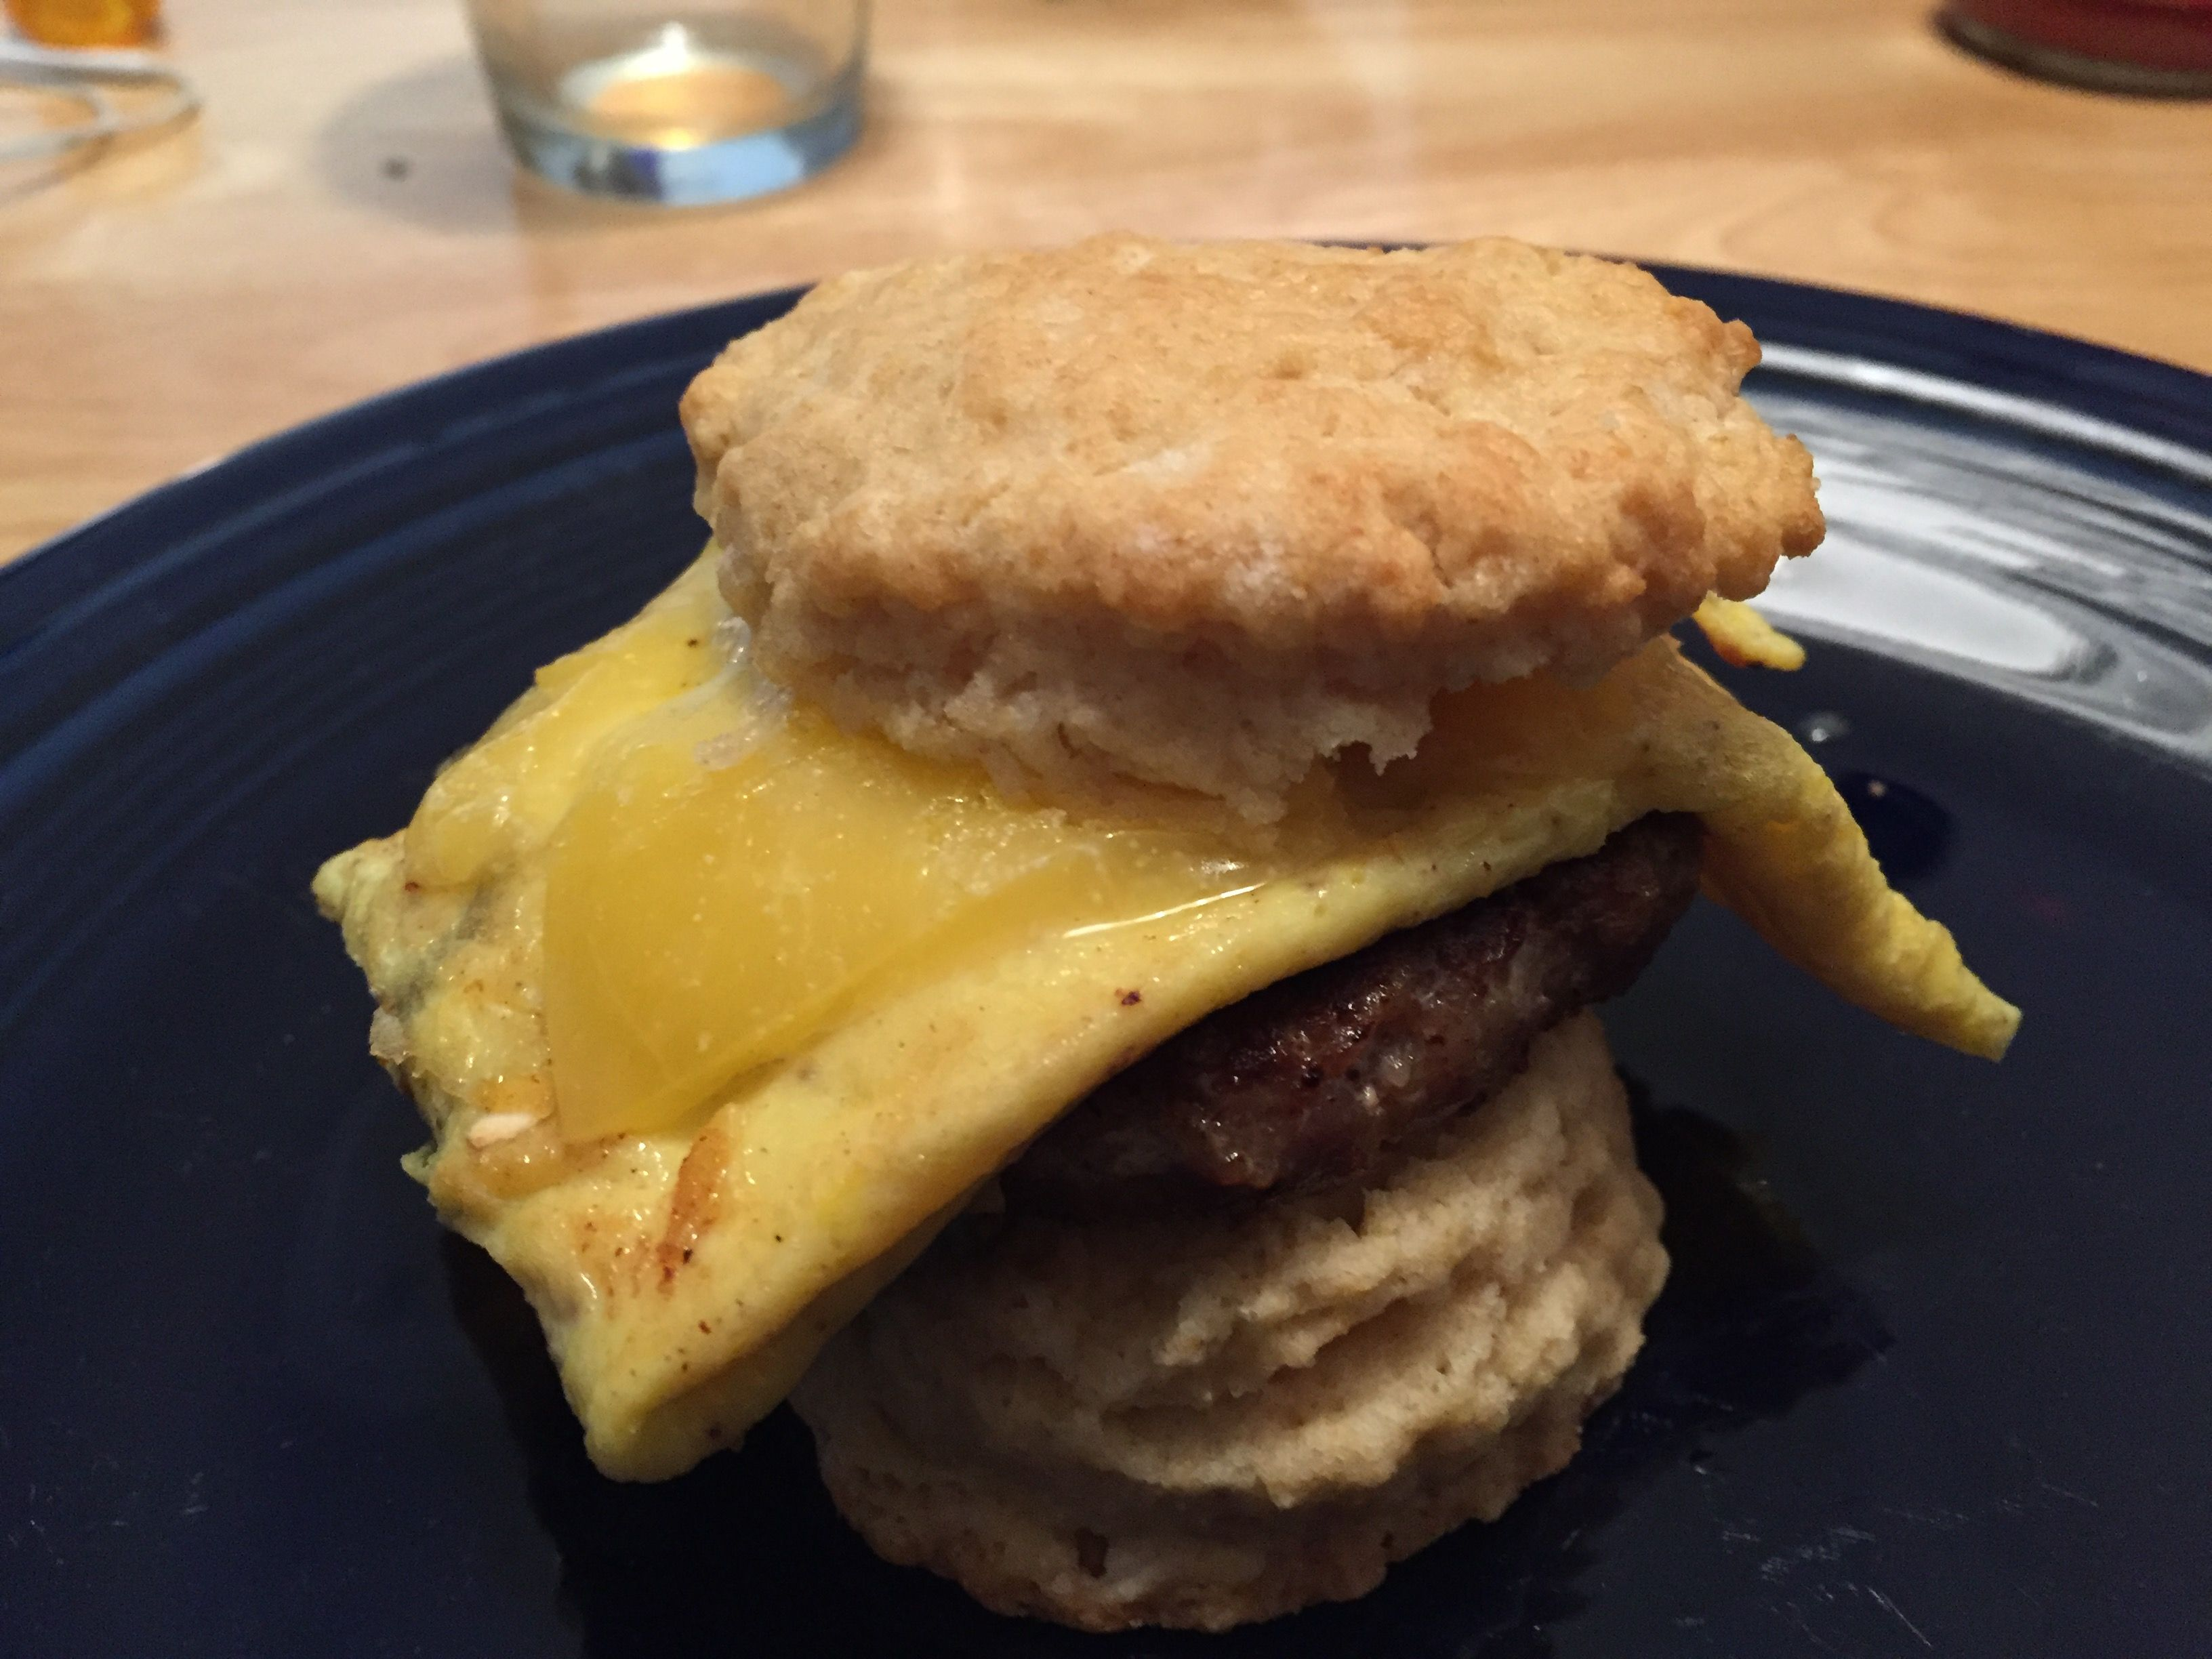 My classic breakfast: a tasty homemade sausage egg and cheese biscuit. Can't beat it.